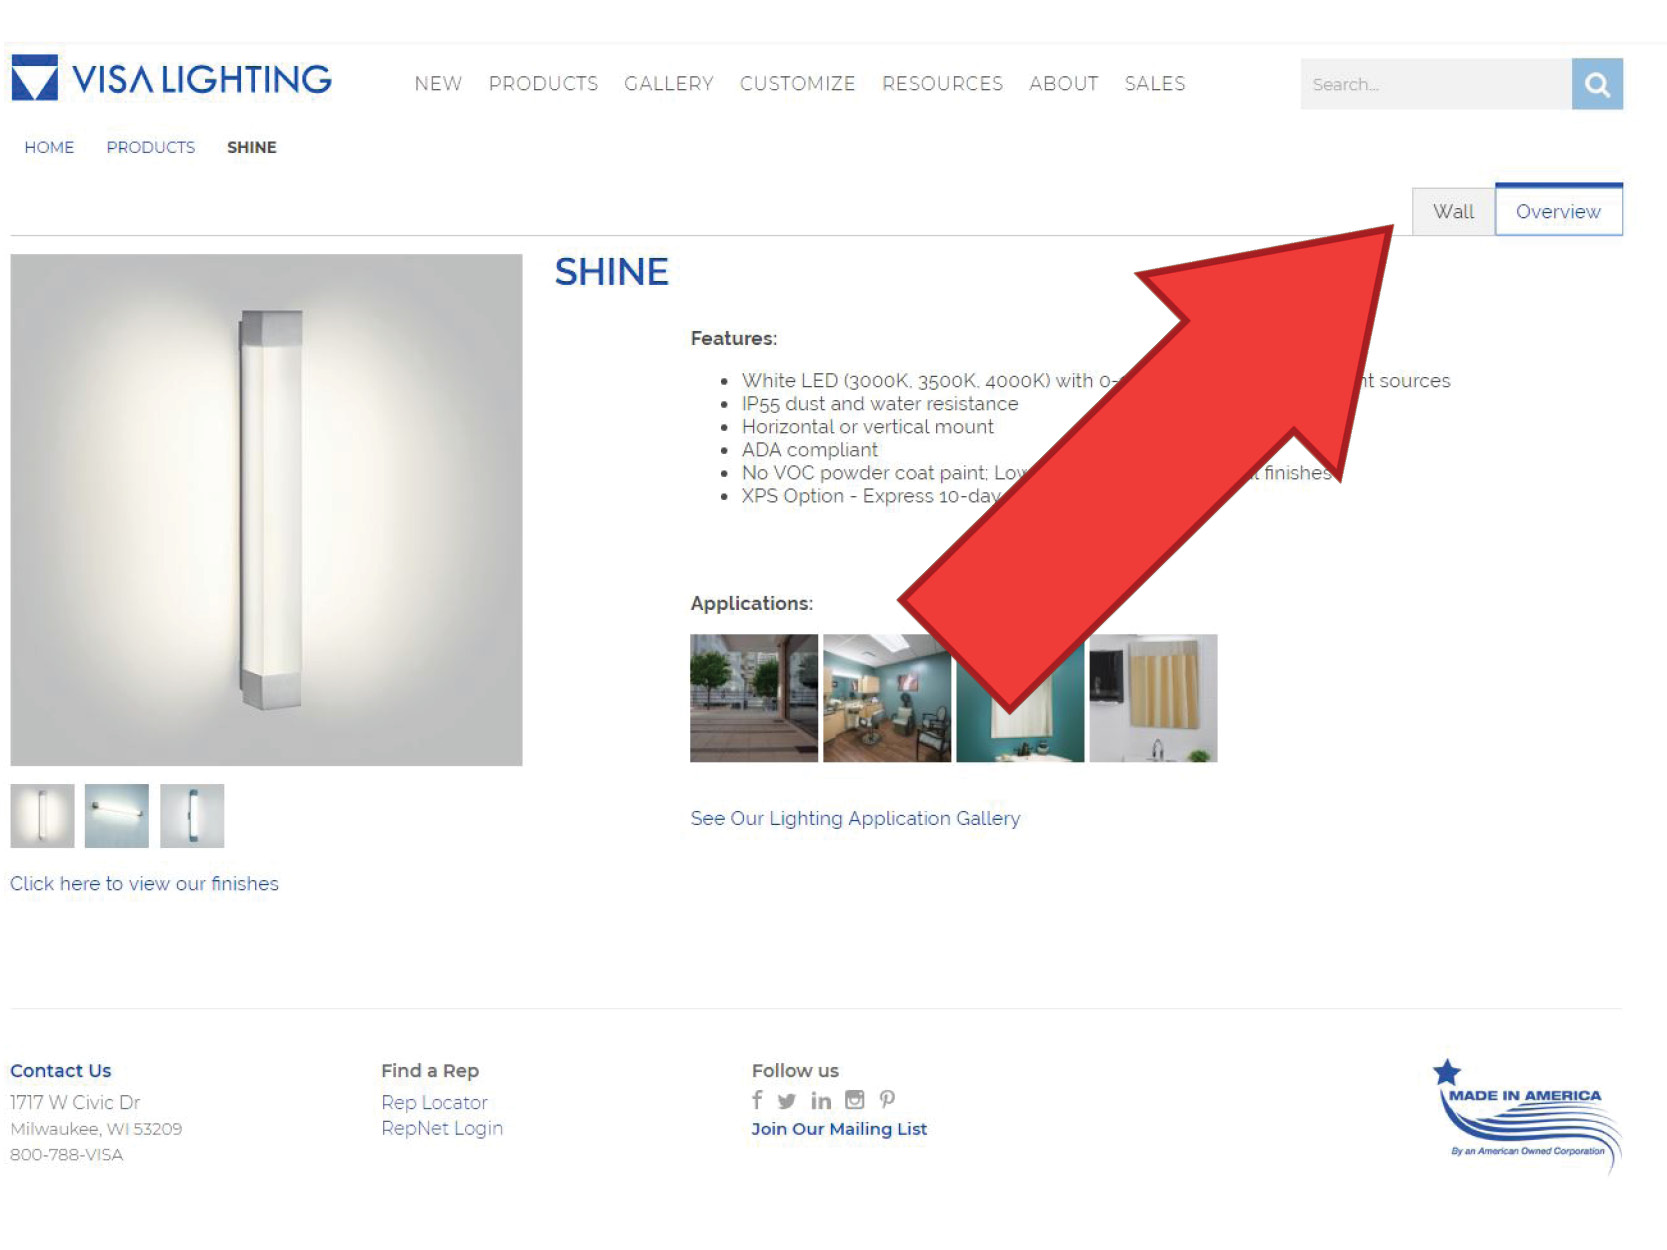 The product shine which has several bim files available including revit lighting files and sketchup